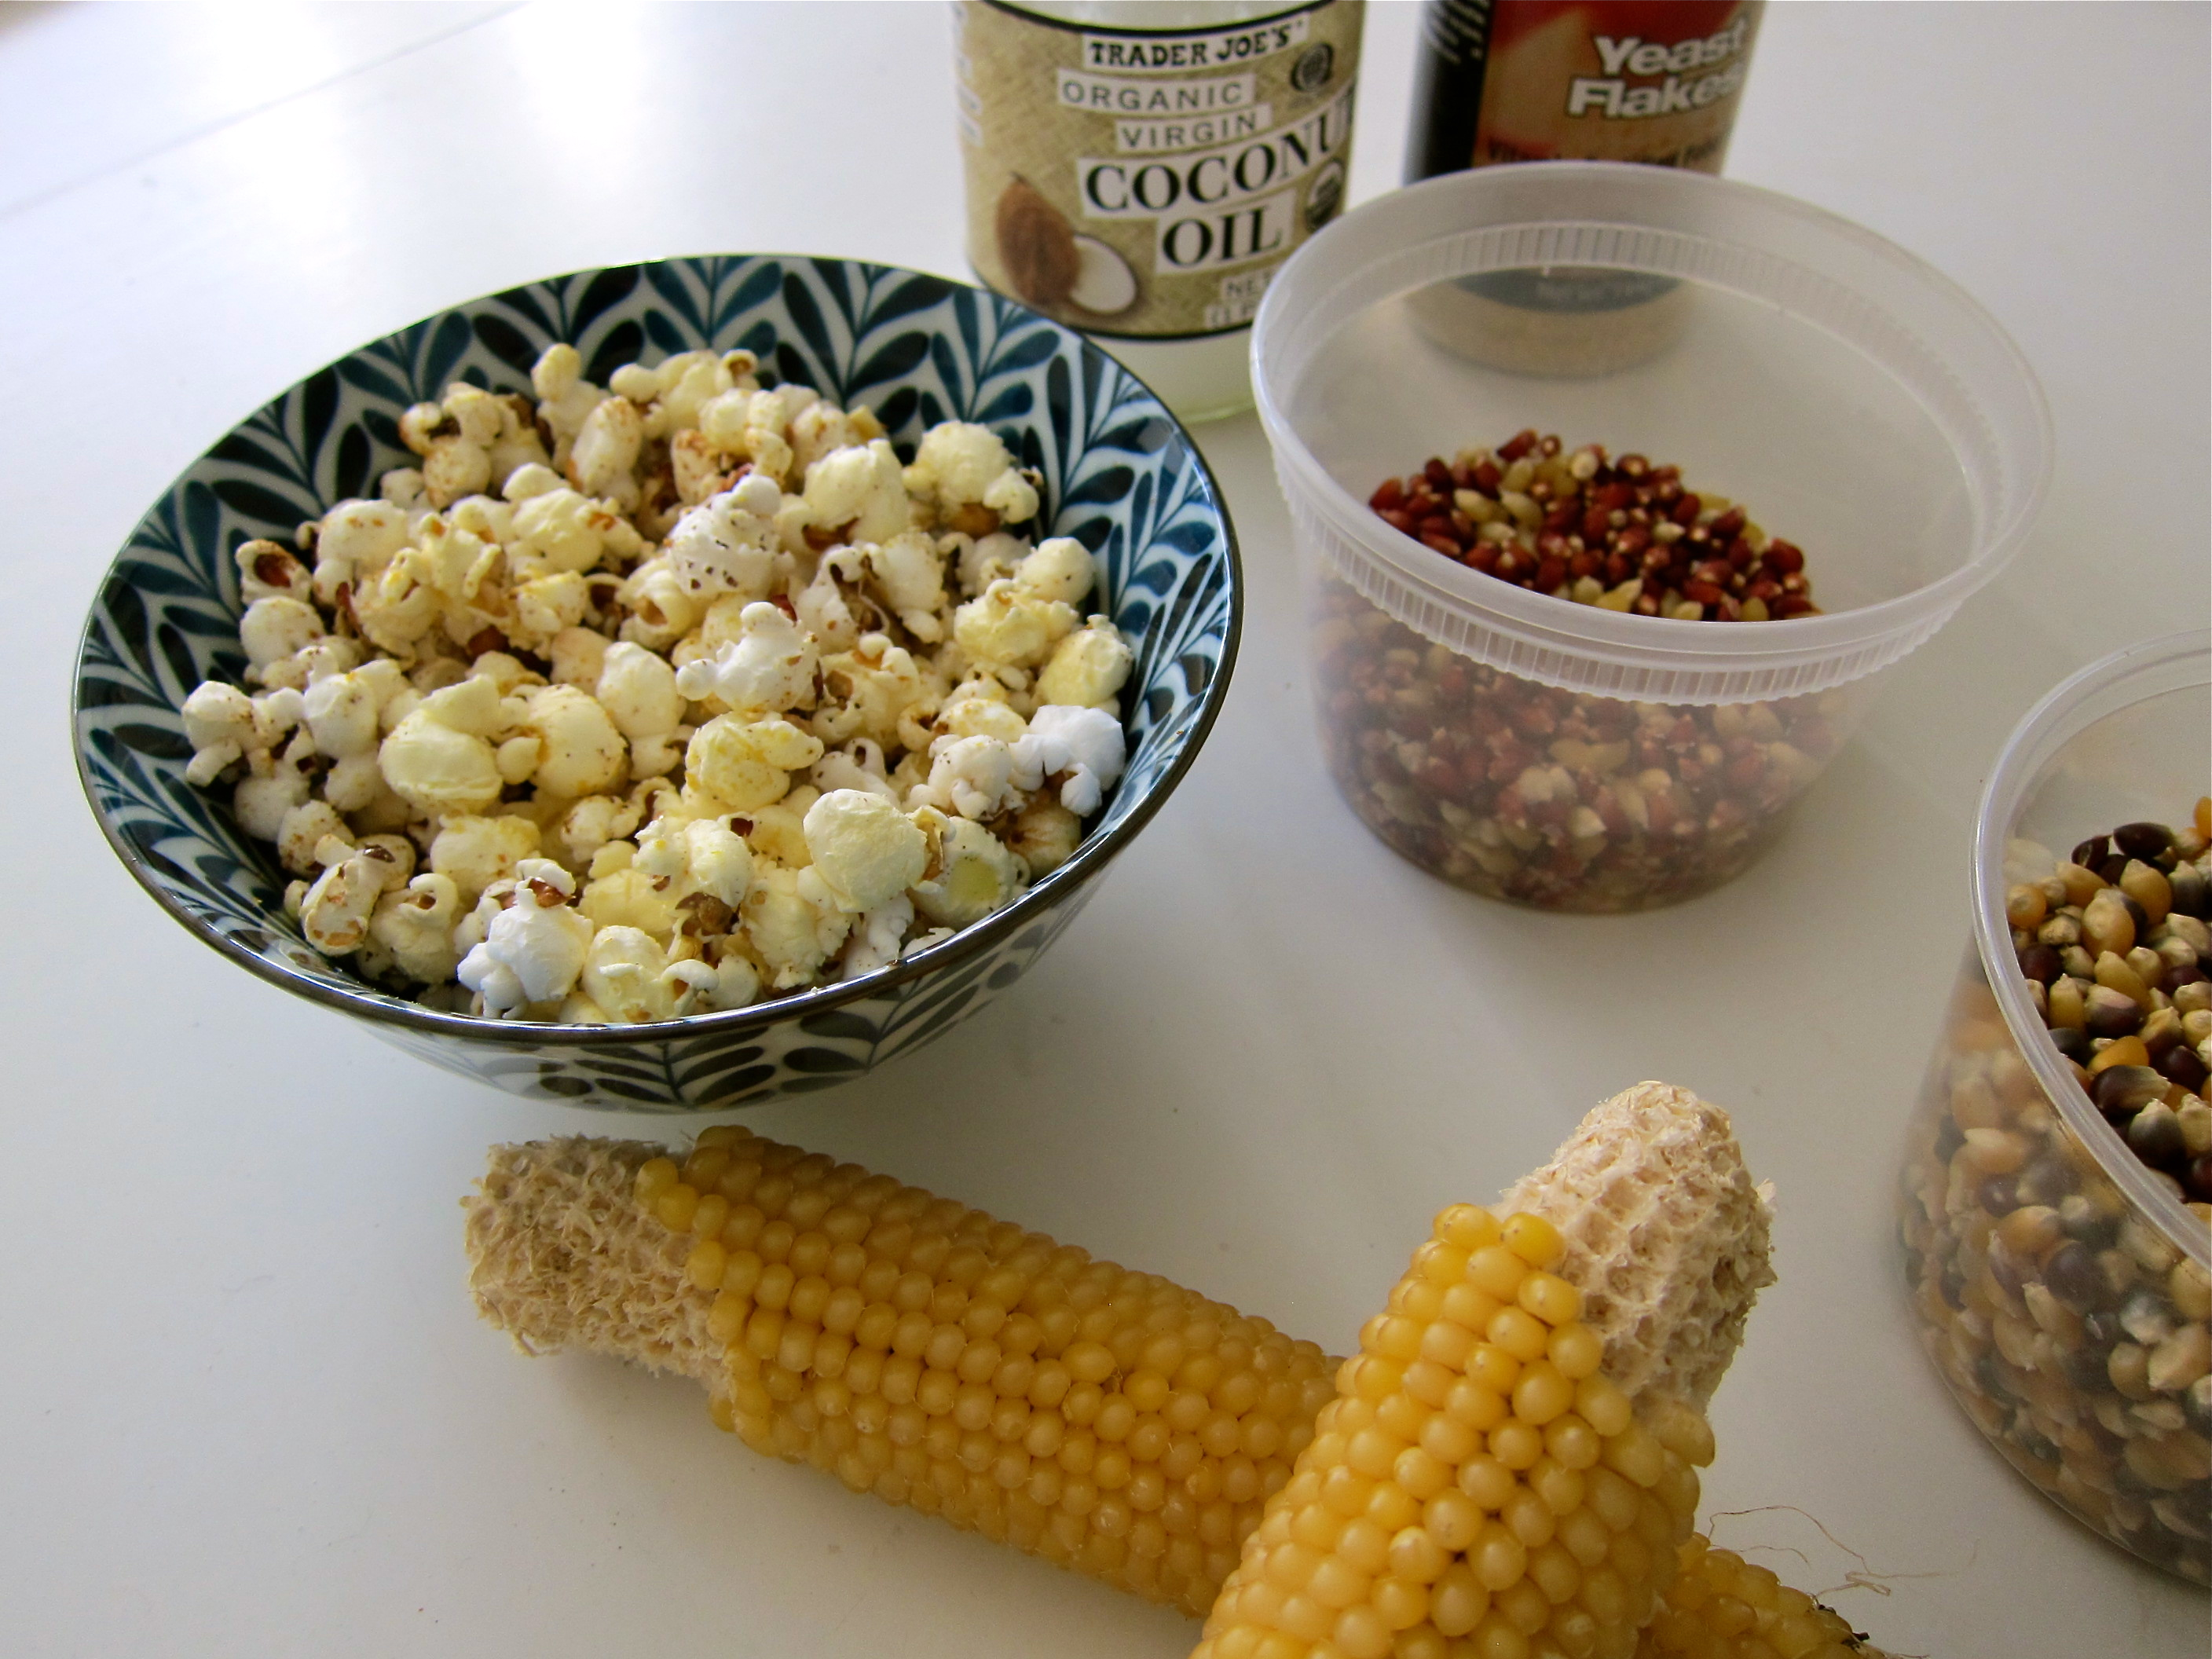 How to make popcorn on stove with coconut oil